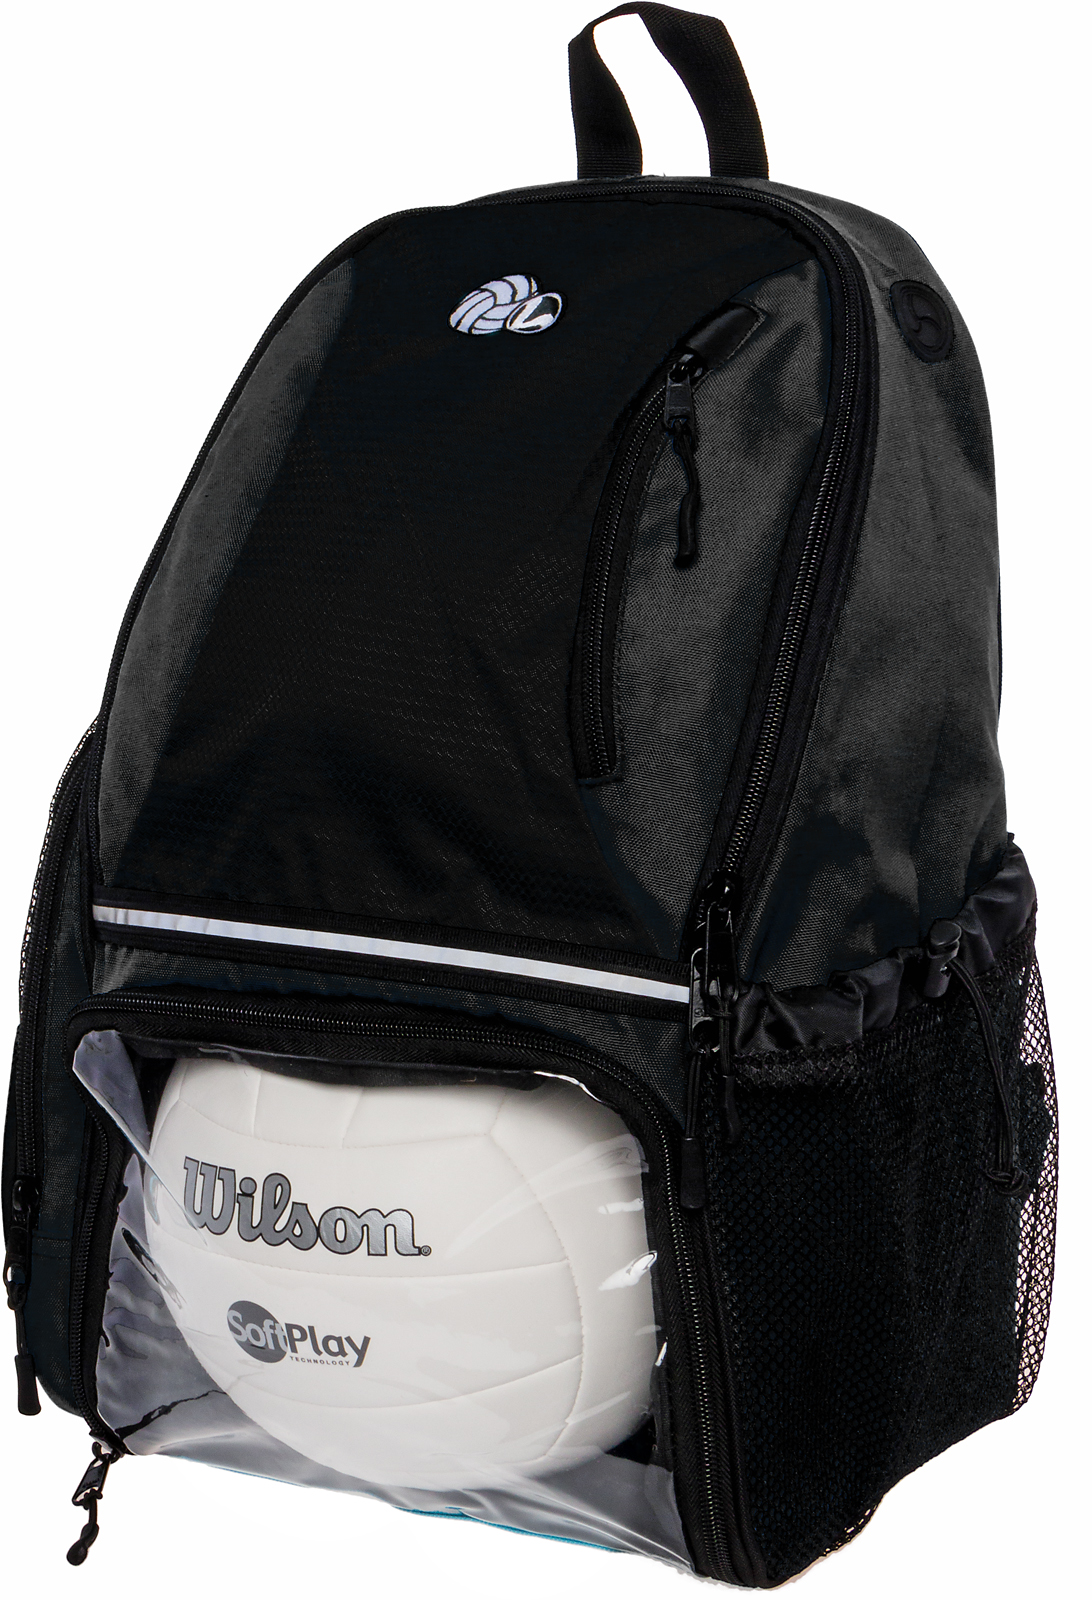 b4f5d32ba8 Details about LISH Girls Large School Sport Volleyball Backpack Bag w Ball  Compartment (Black)